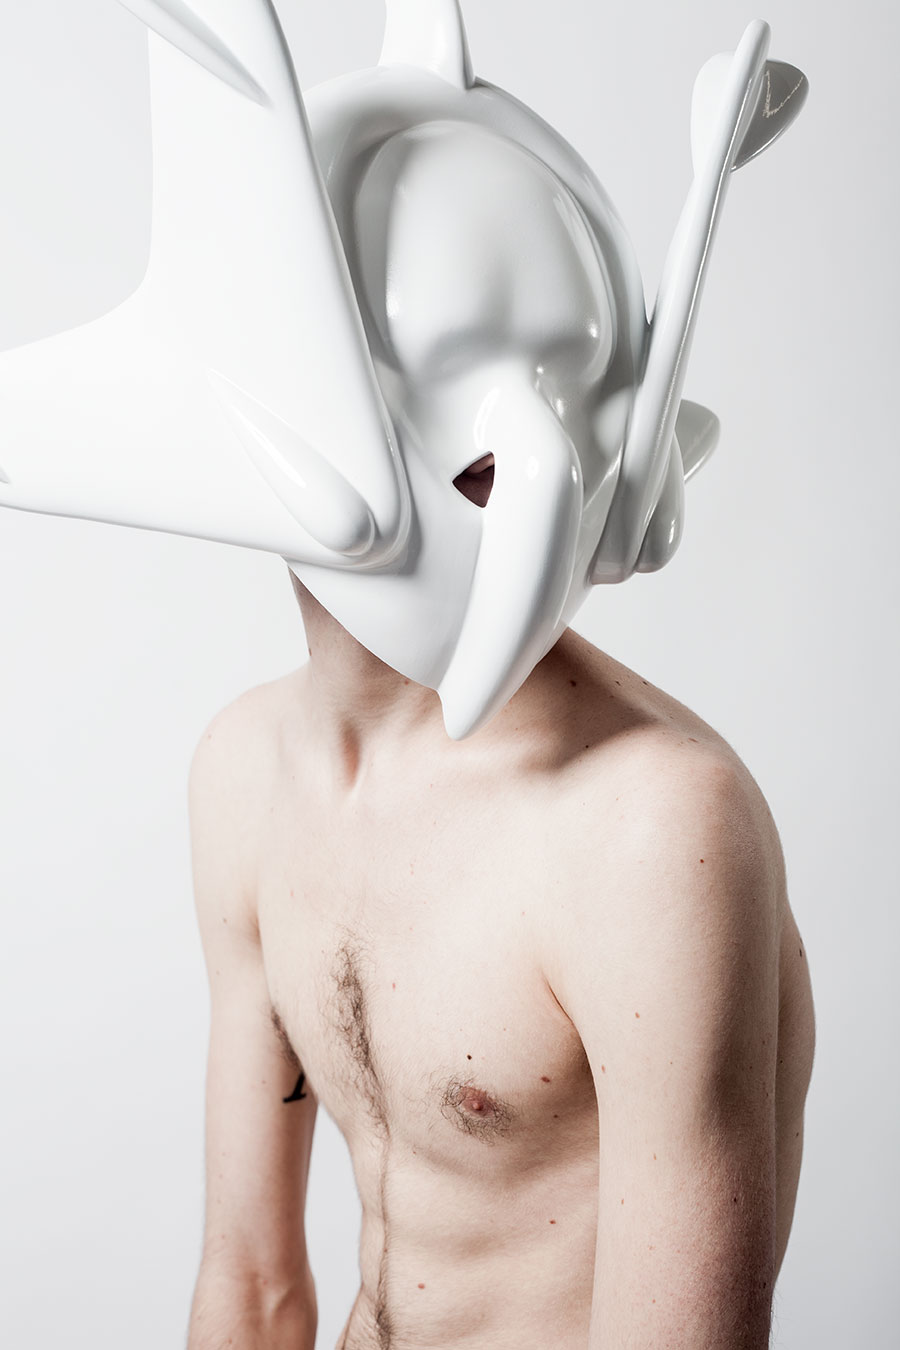 Headpiece by Rein Vollenga.Photography by Jonas Lindström, courtesy the artist.